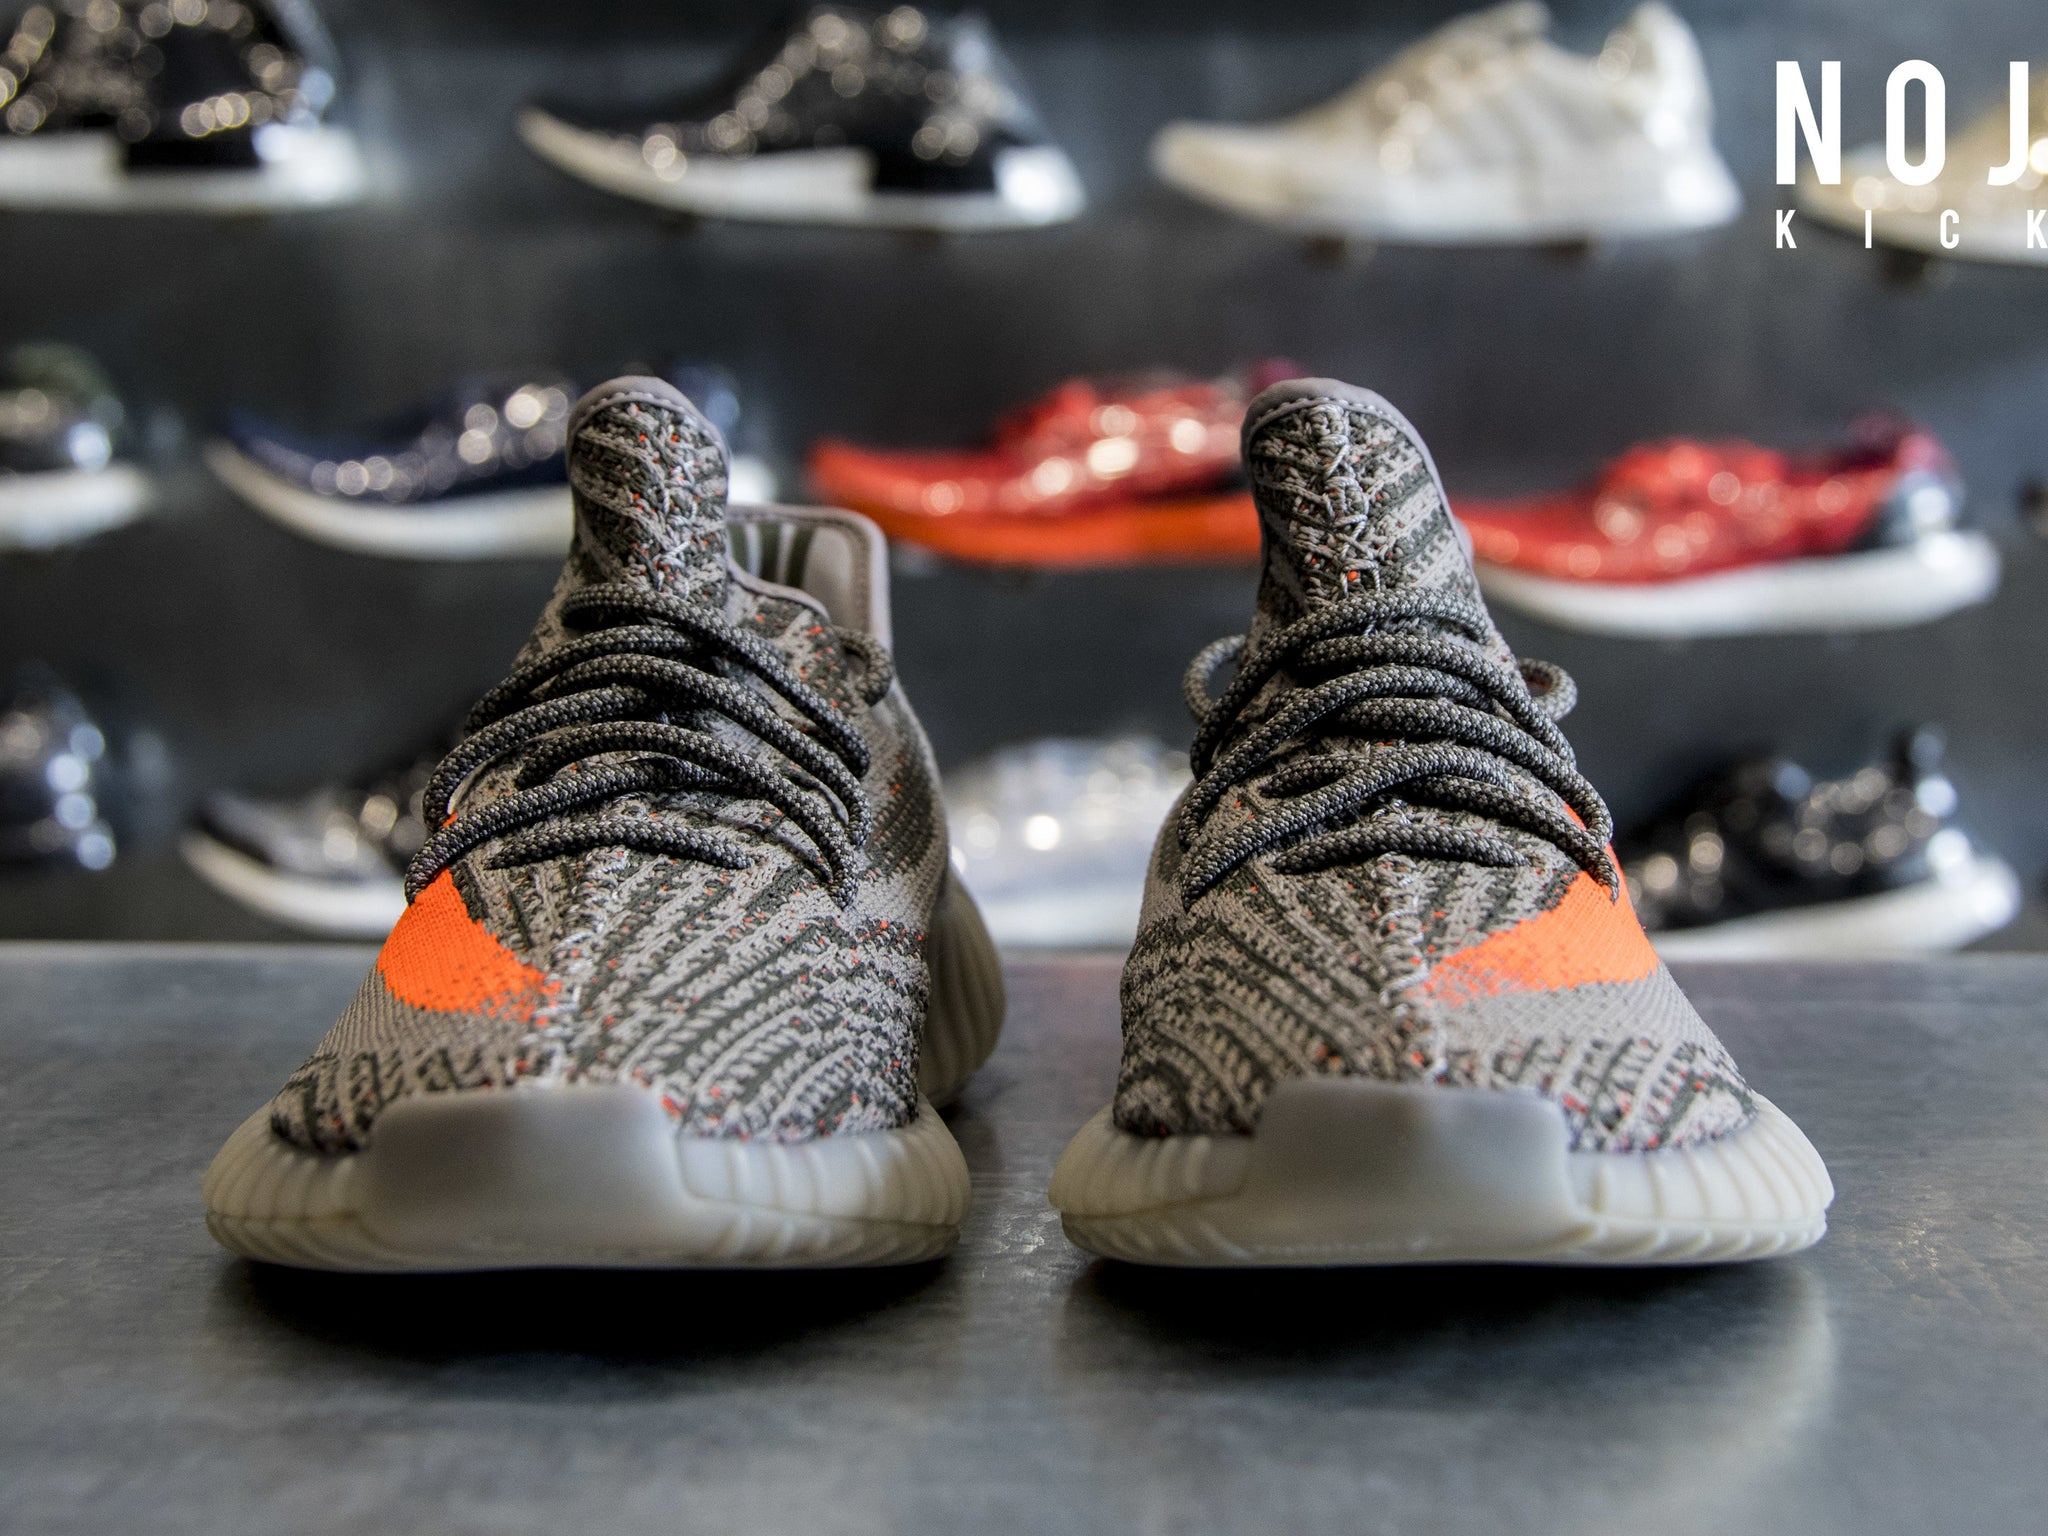 d022e0d2061 Shop Adidas Yeezy Shoes by Kanye West in Detroit